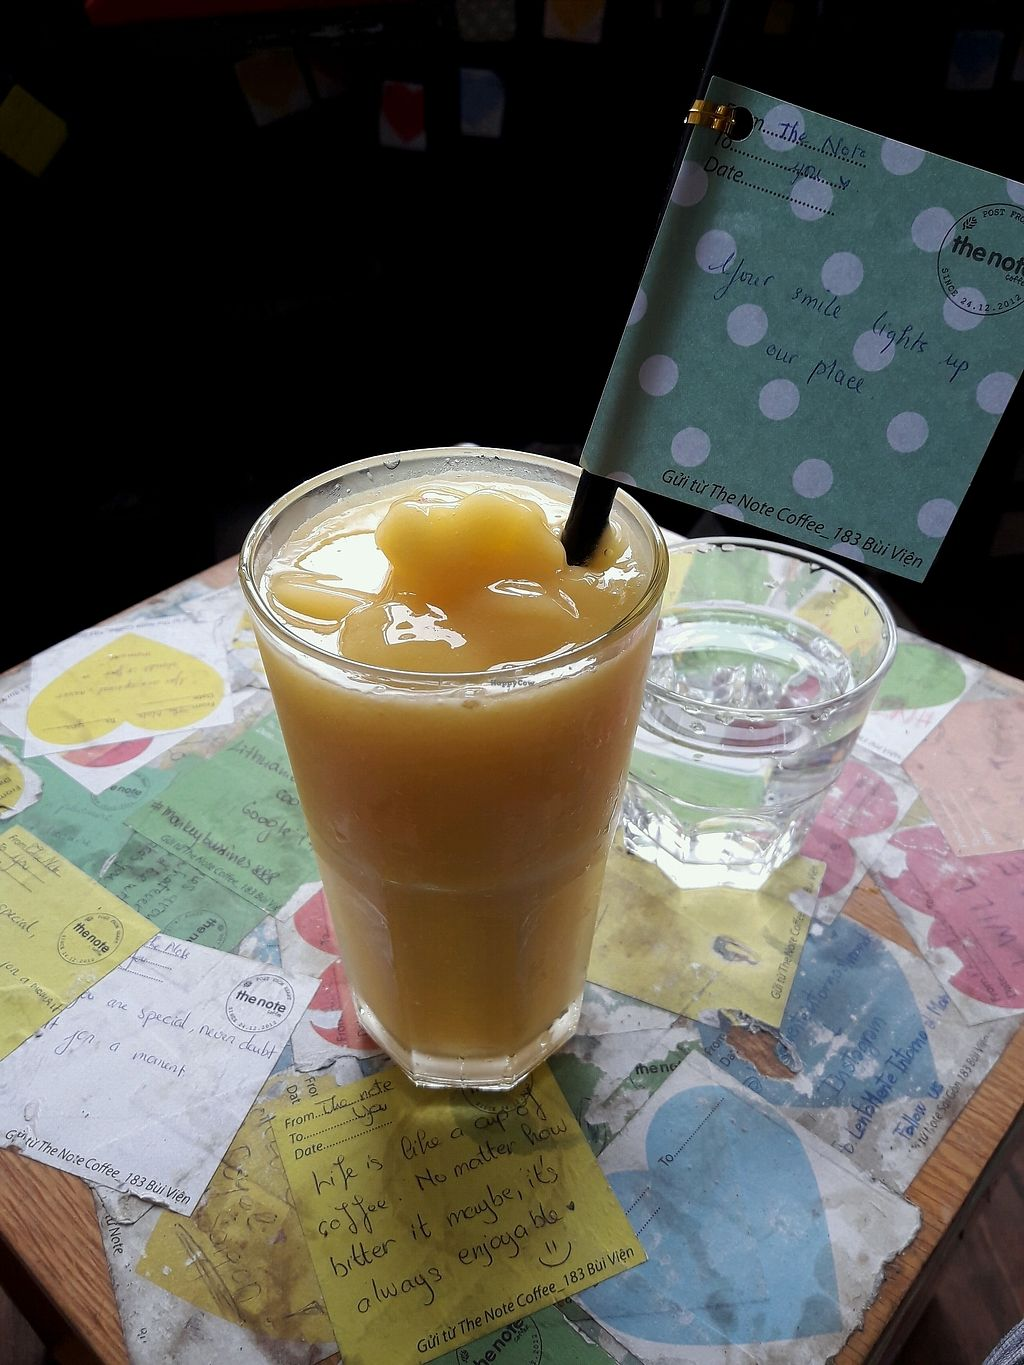 """Photo of The Note Coffee  by <a href=""""/members/profile/FineGiebler"""">FineGiebler</a> <br/>Orange & mango smoothie <br/> February 3, 2018  - <a href='/contact/abuse/image/108749/354489'>Report</a>"""